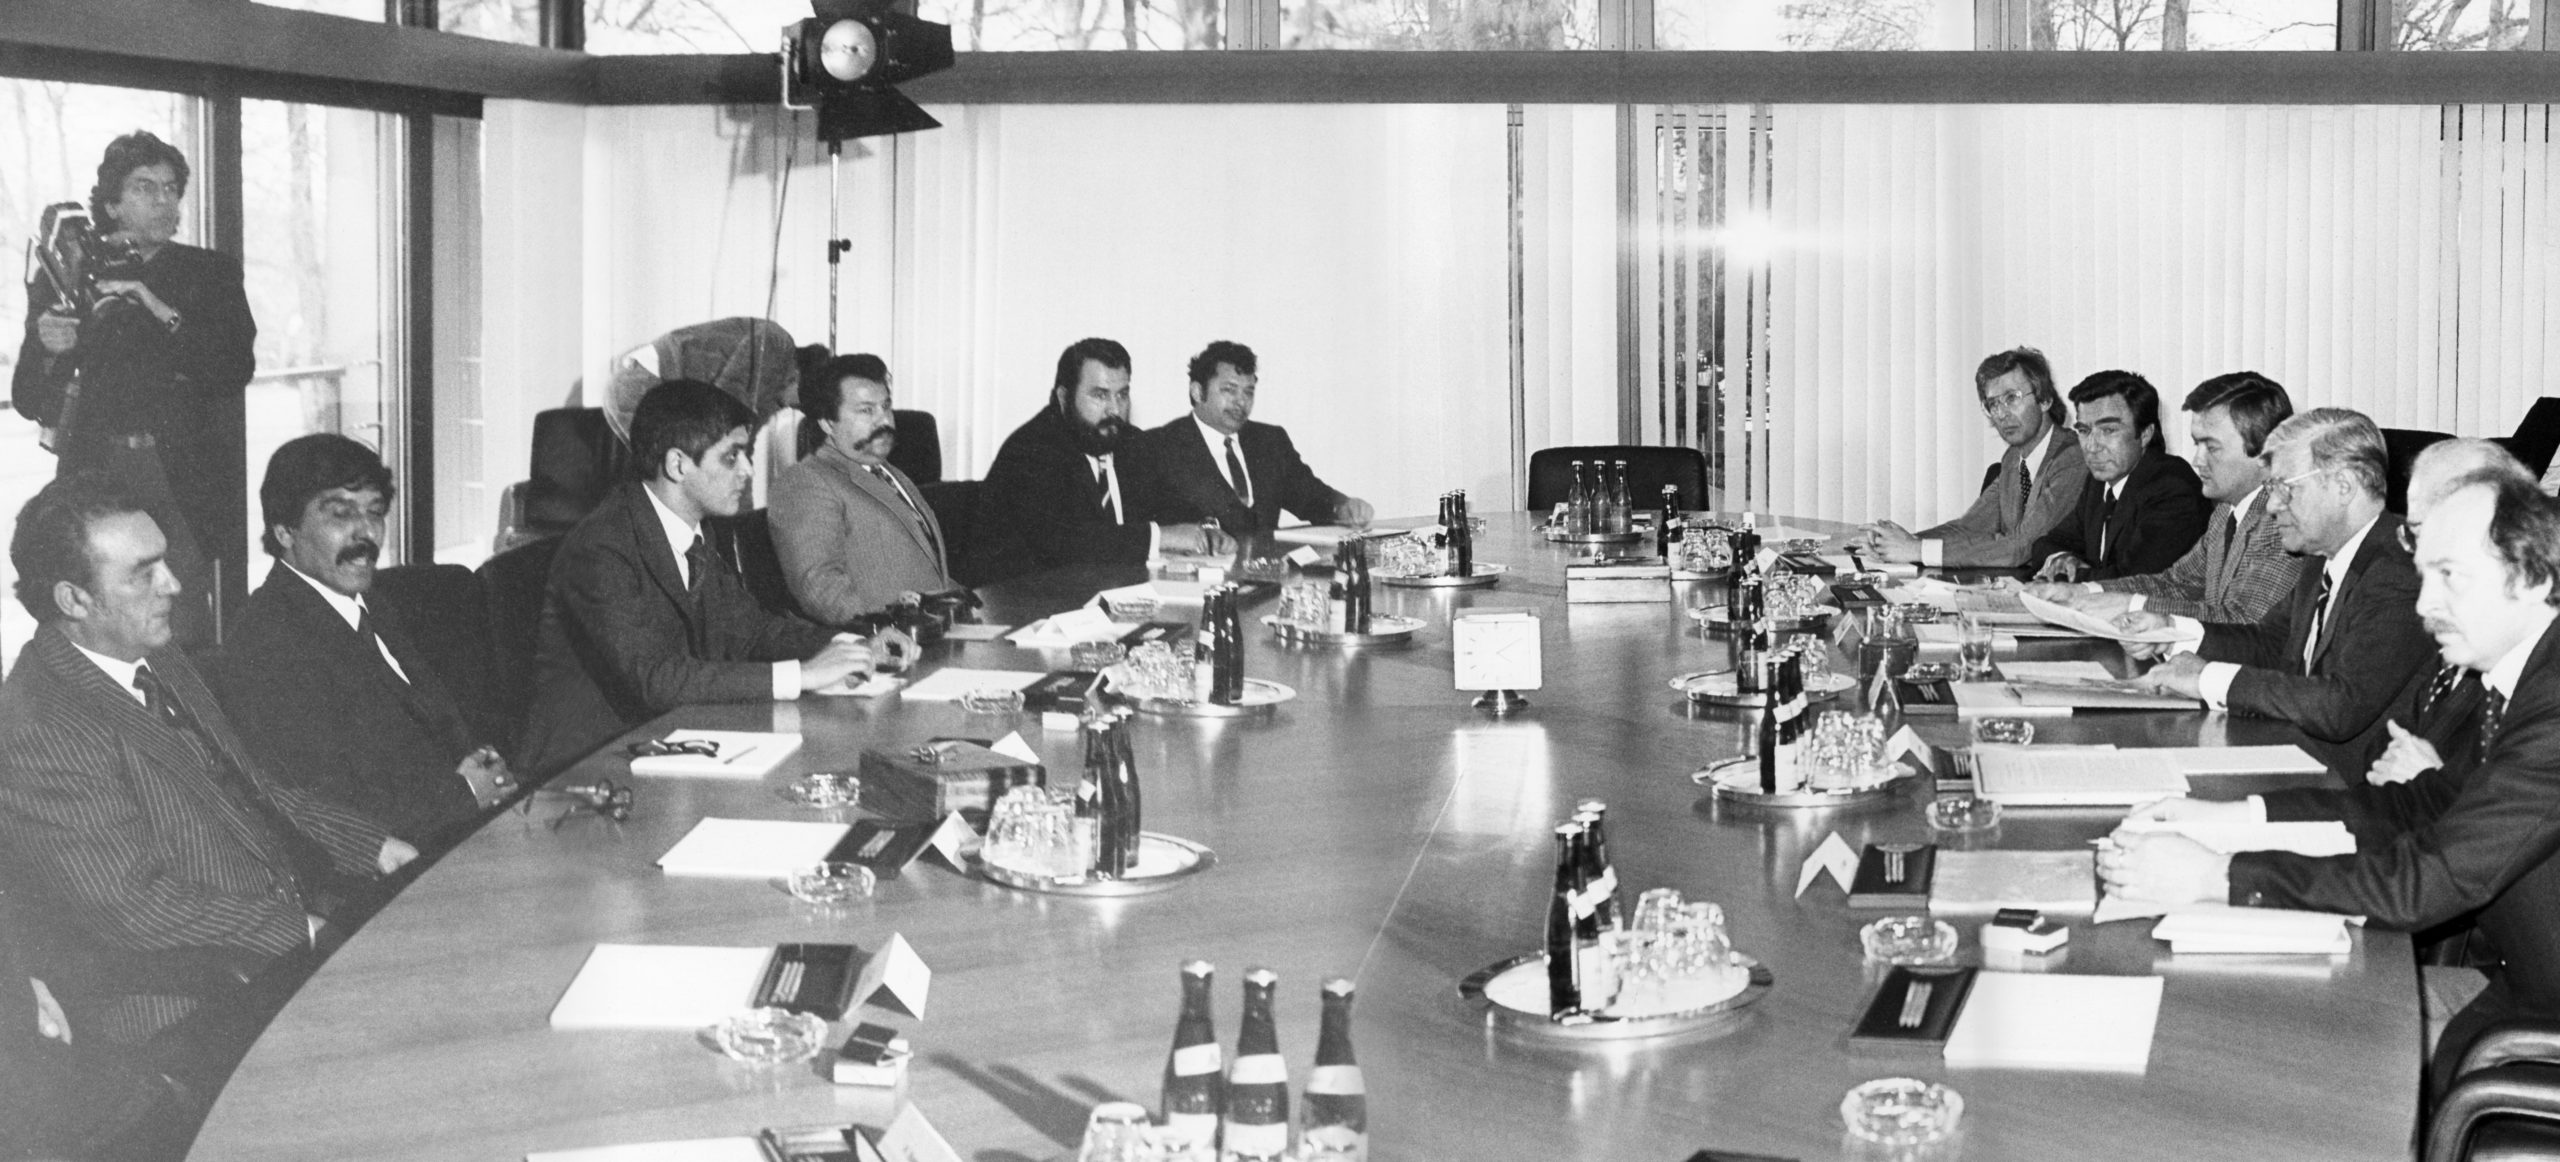 Recognition of the Nazi genocide of the Sinti and Roma by Federal Chancellor Helmut Schmidt, March 1982; pictured, from the left, inter alia: Romani Rose, Josef Kwiek, Anton Franz, Egon Siebert; Secretary of State to the Federal Minister of the Interior, Andreas von Schoeler, alongside Chancellor Helmut Schmidt